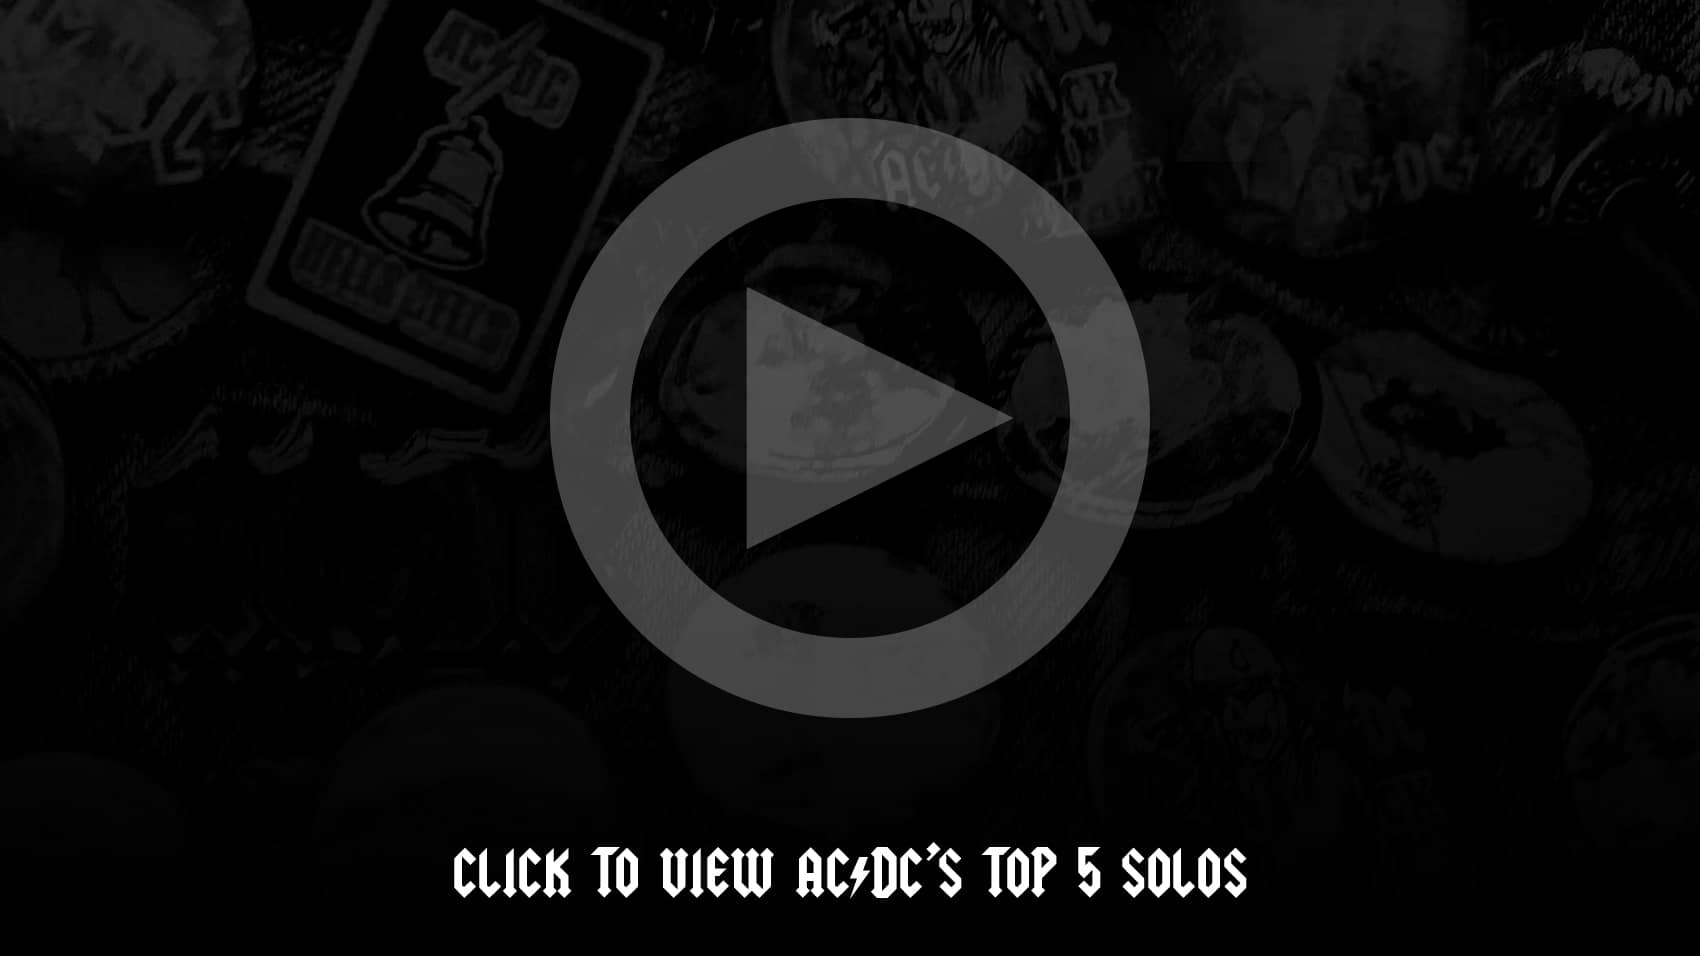 The Top 5 Solos of AC/DC